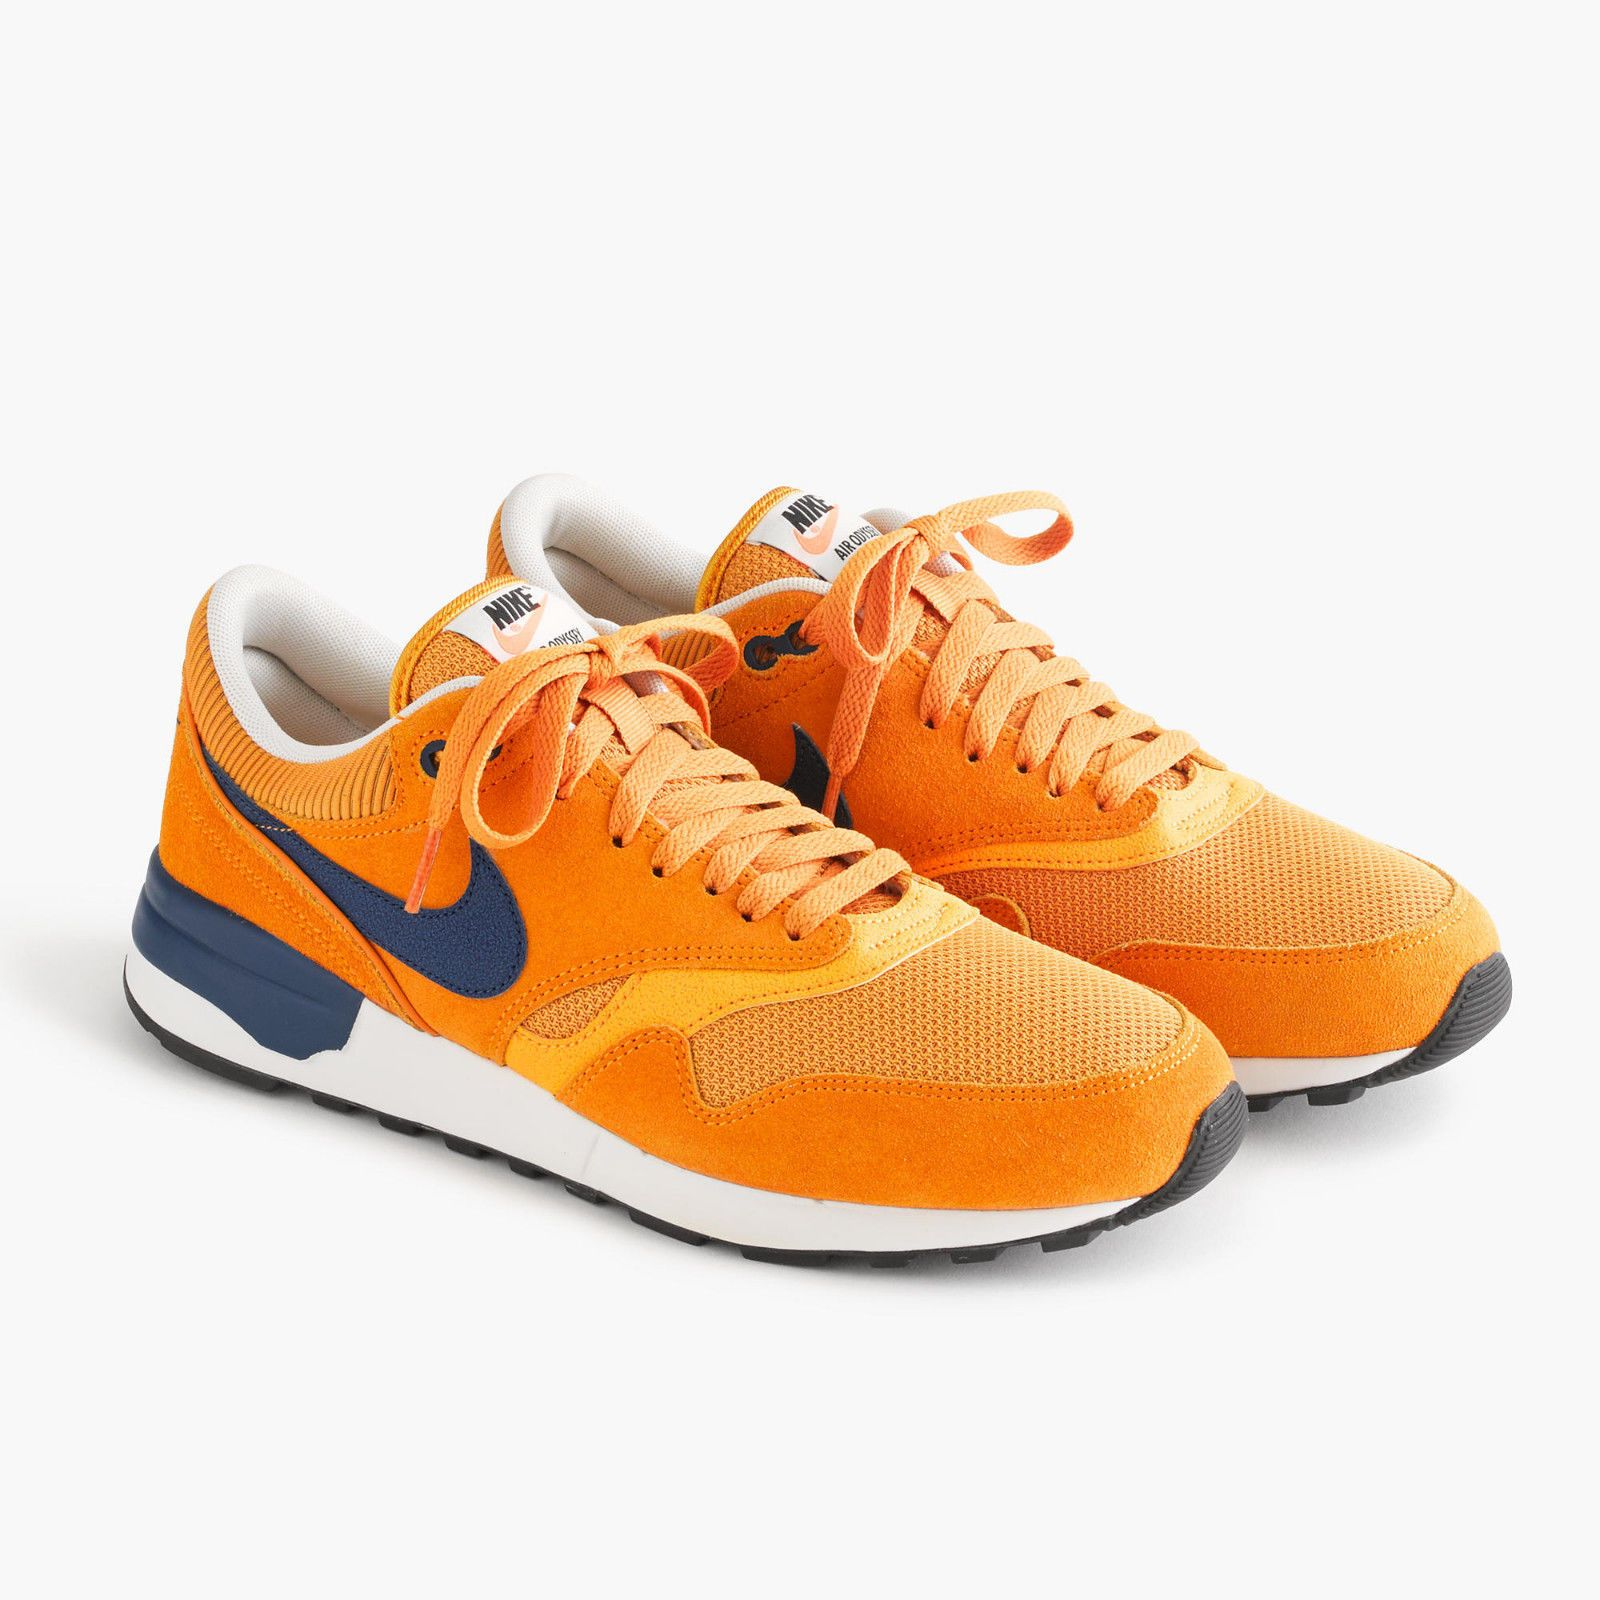 separation shoes c9efc 7d958 NEW J.CREW NIKE AIR ODYSSEY SNEAKERS IN GOLD MAIZE YELLOW NAVY BLUE MENS  SIZE 7